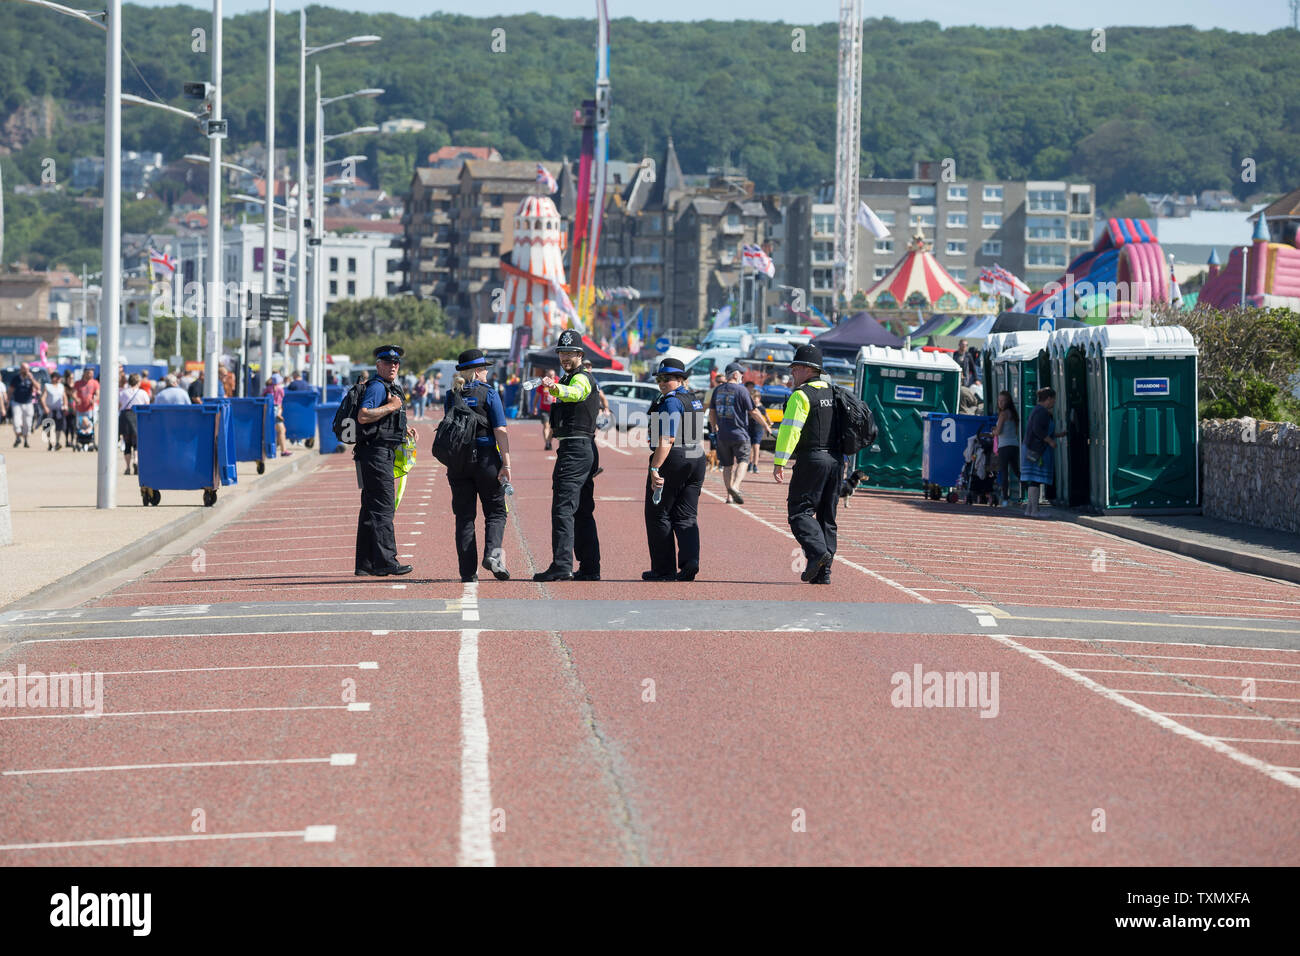 UK police team on duty at Weston-super-Mare's Air Festival event, June 2019. - Stock Image